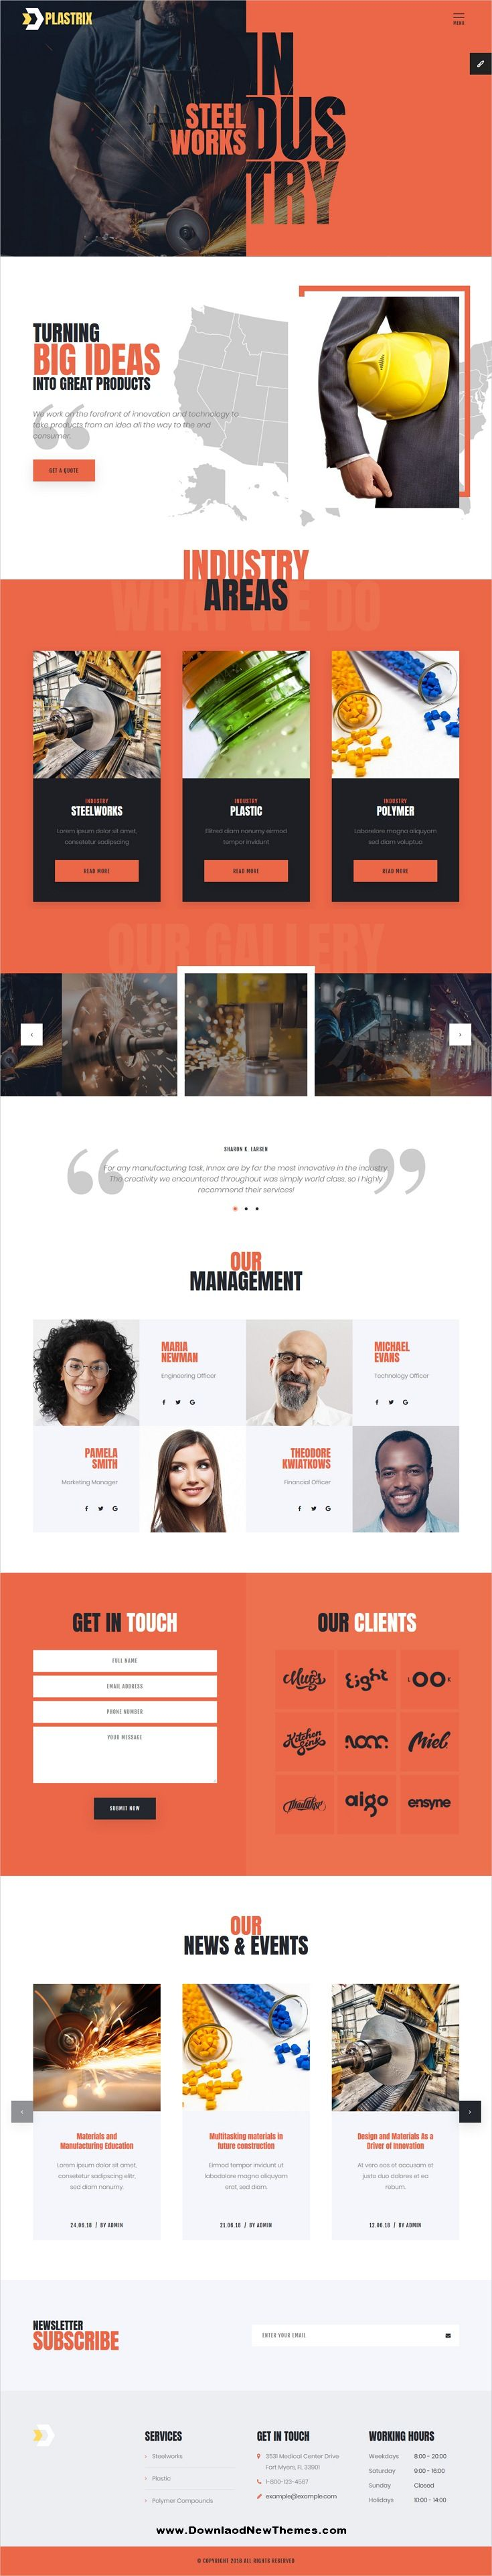 Plastrix Is A Clean And Modern Design 3in1 Responsive Bootstrap Html5 Template For Industry Factory Engi Amazing Website Designs Web Design Website Design